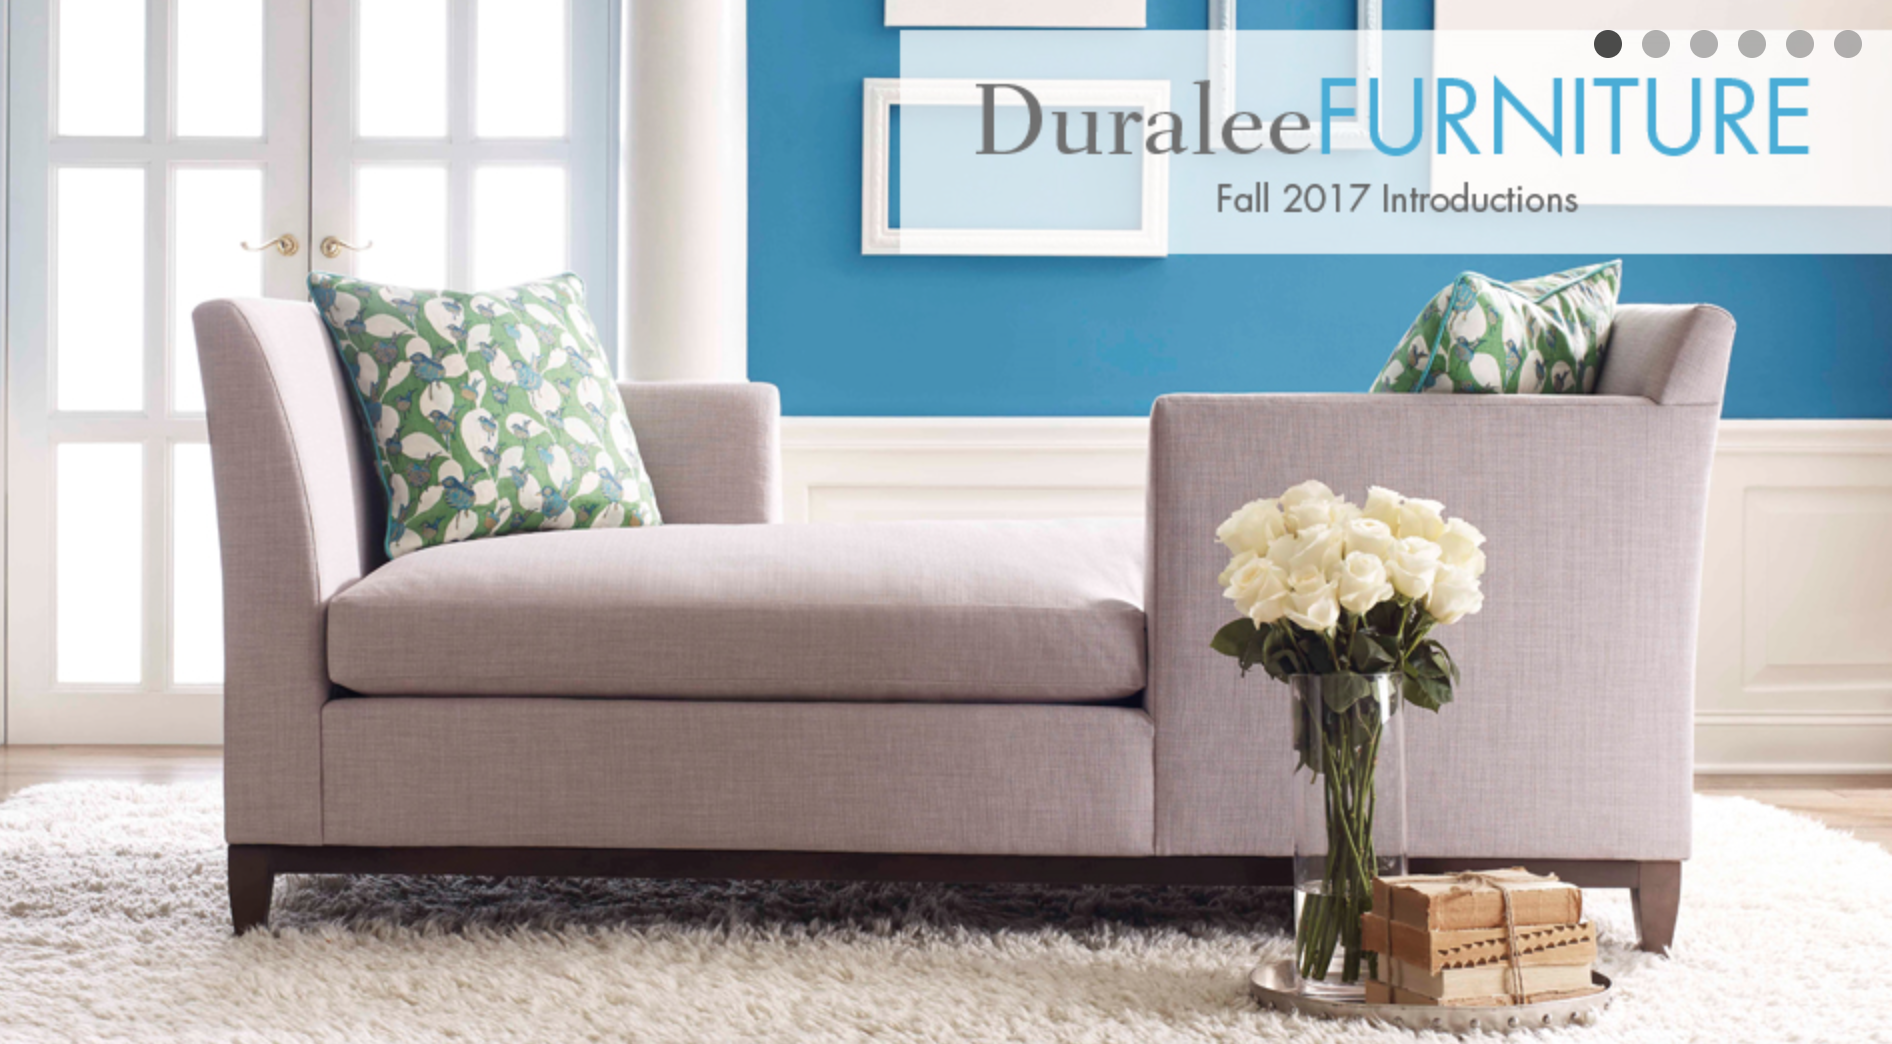 Introducing All New Duralee Furniture Designs For Fall